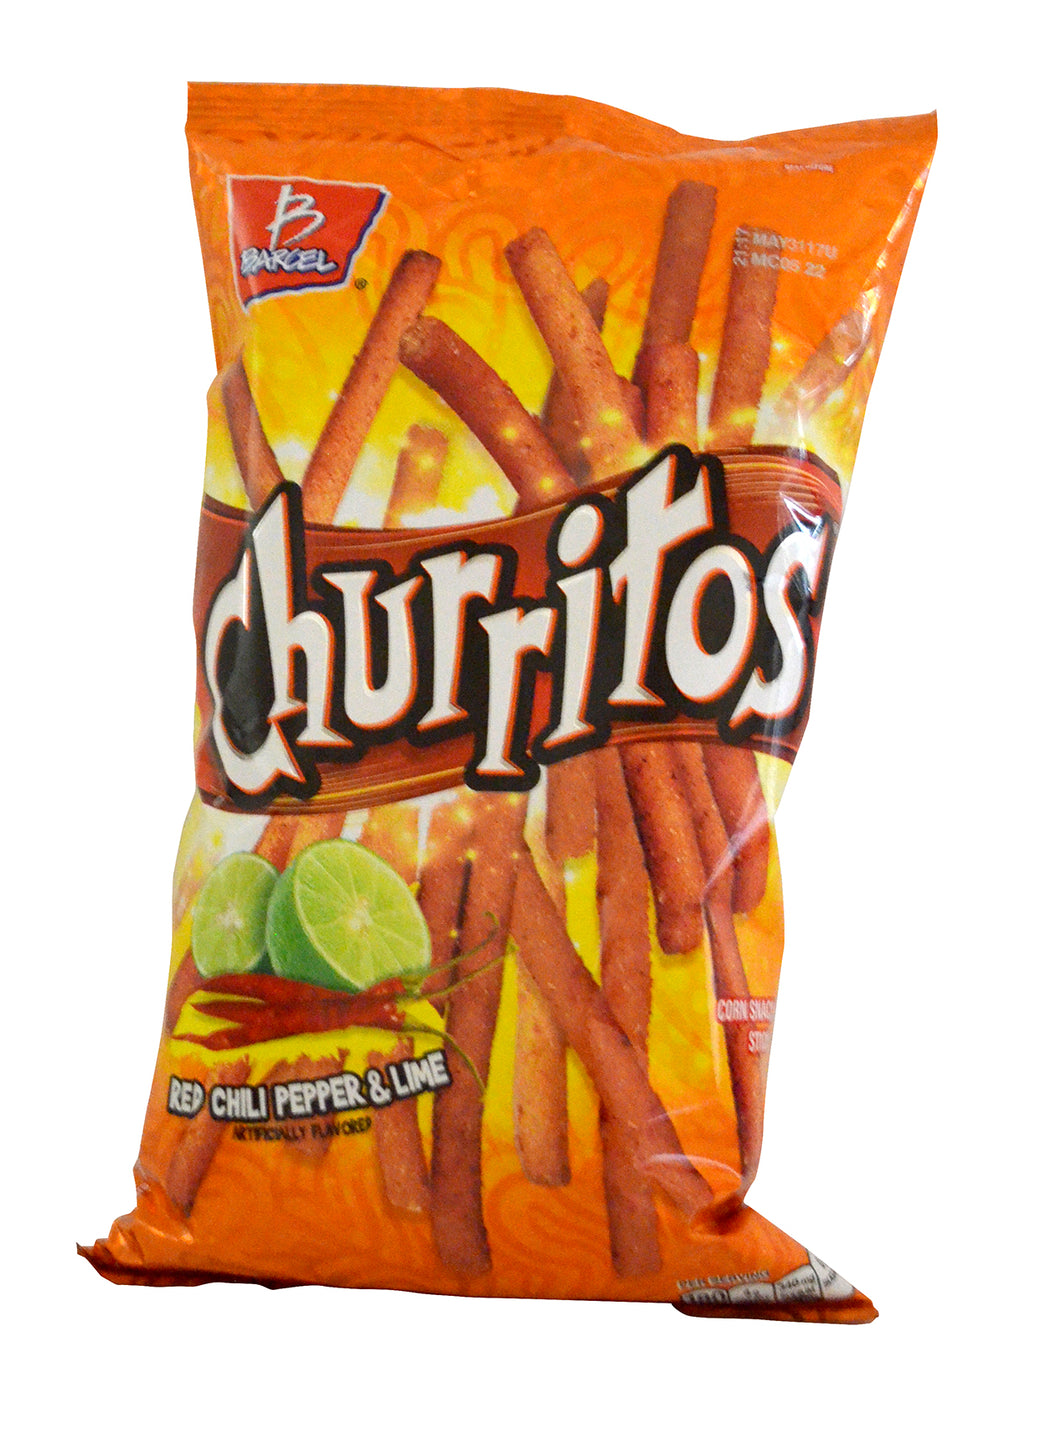 Churritos corn snack sticks